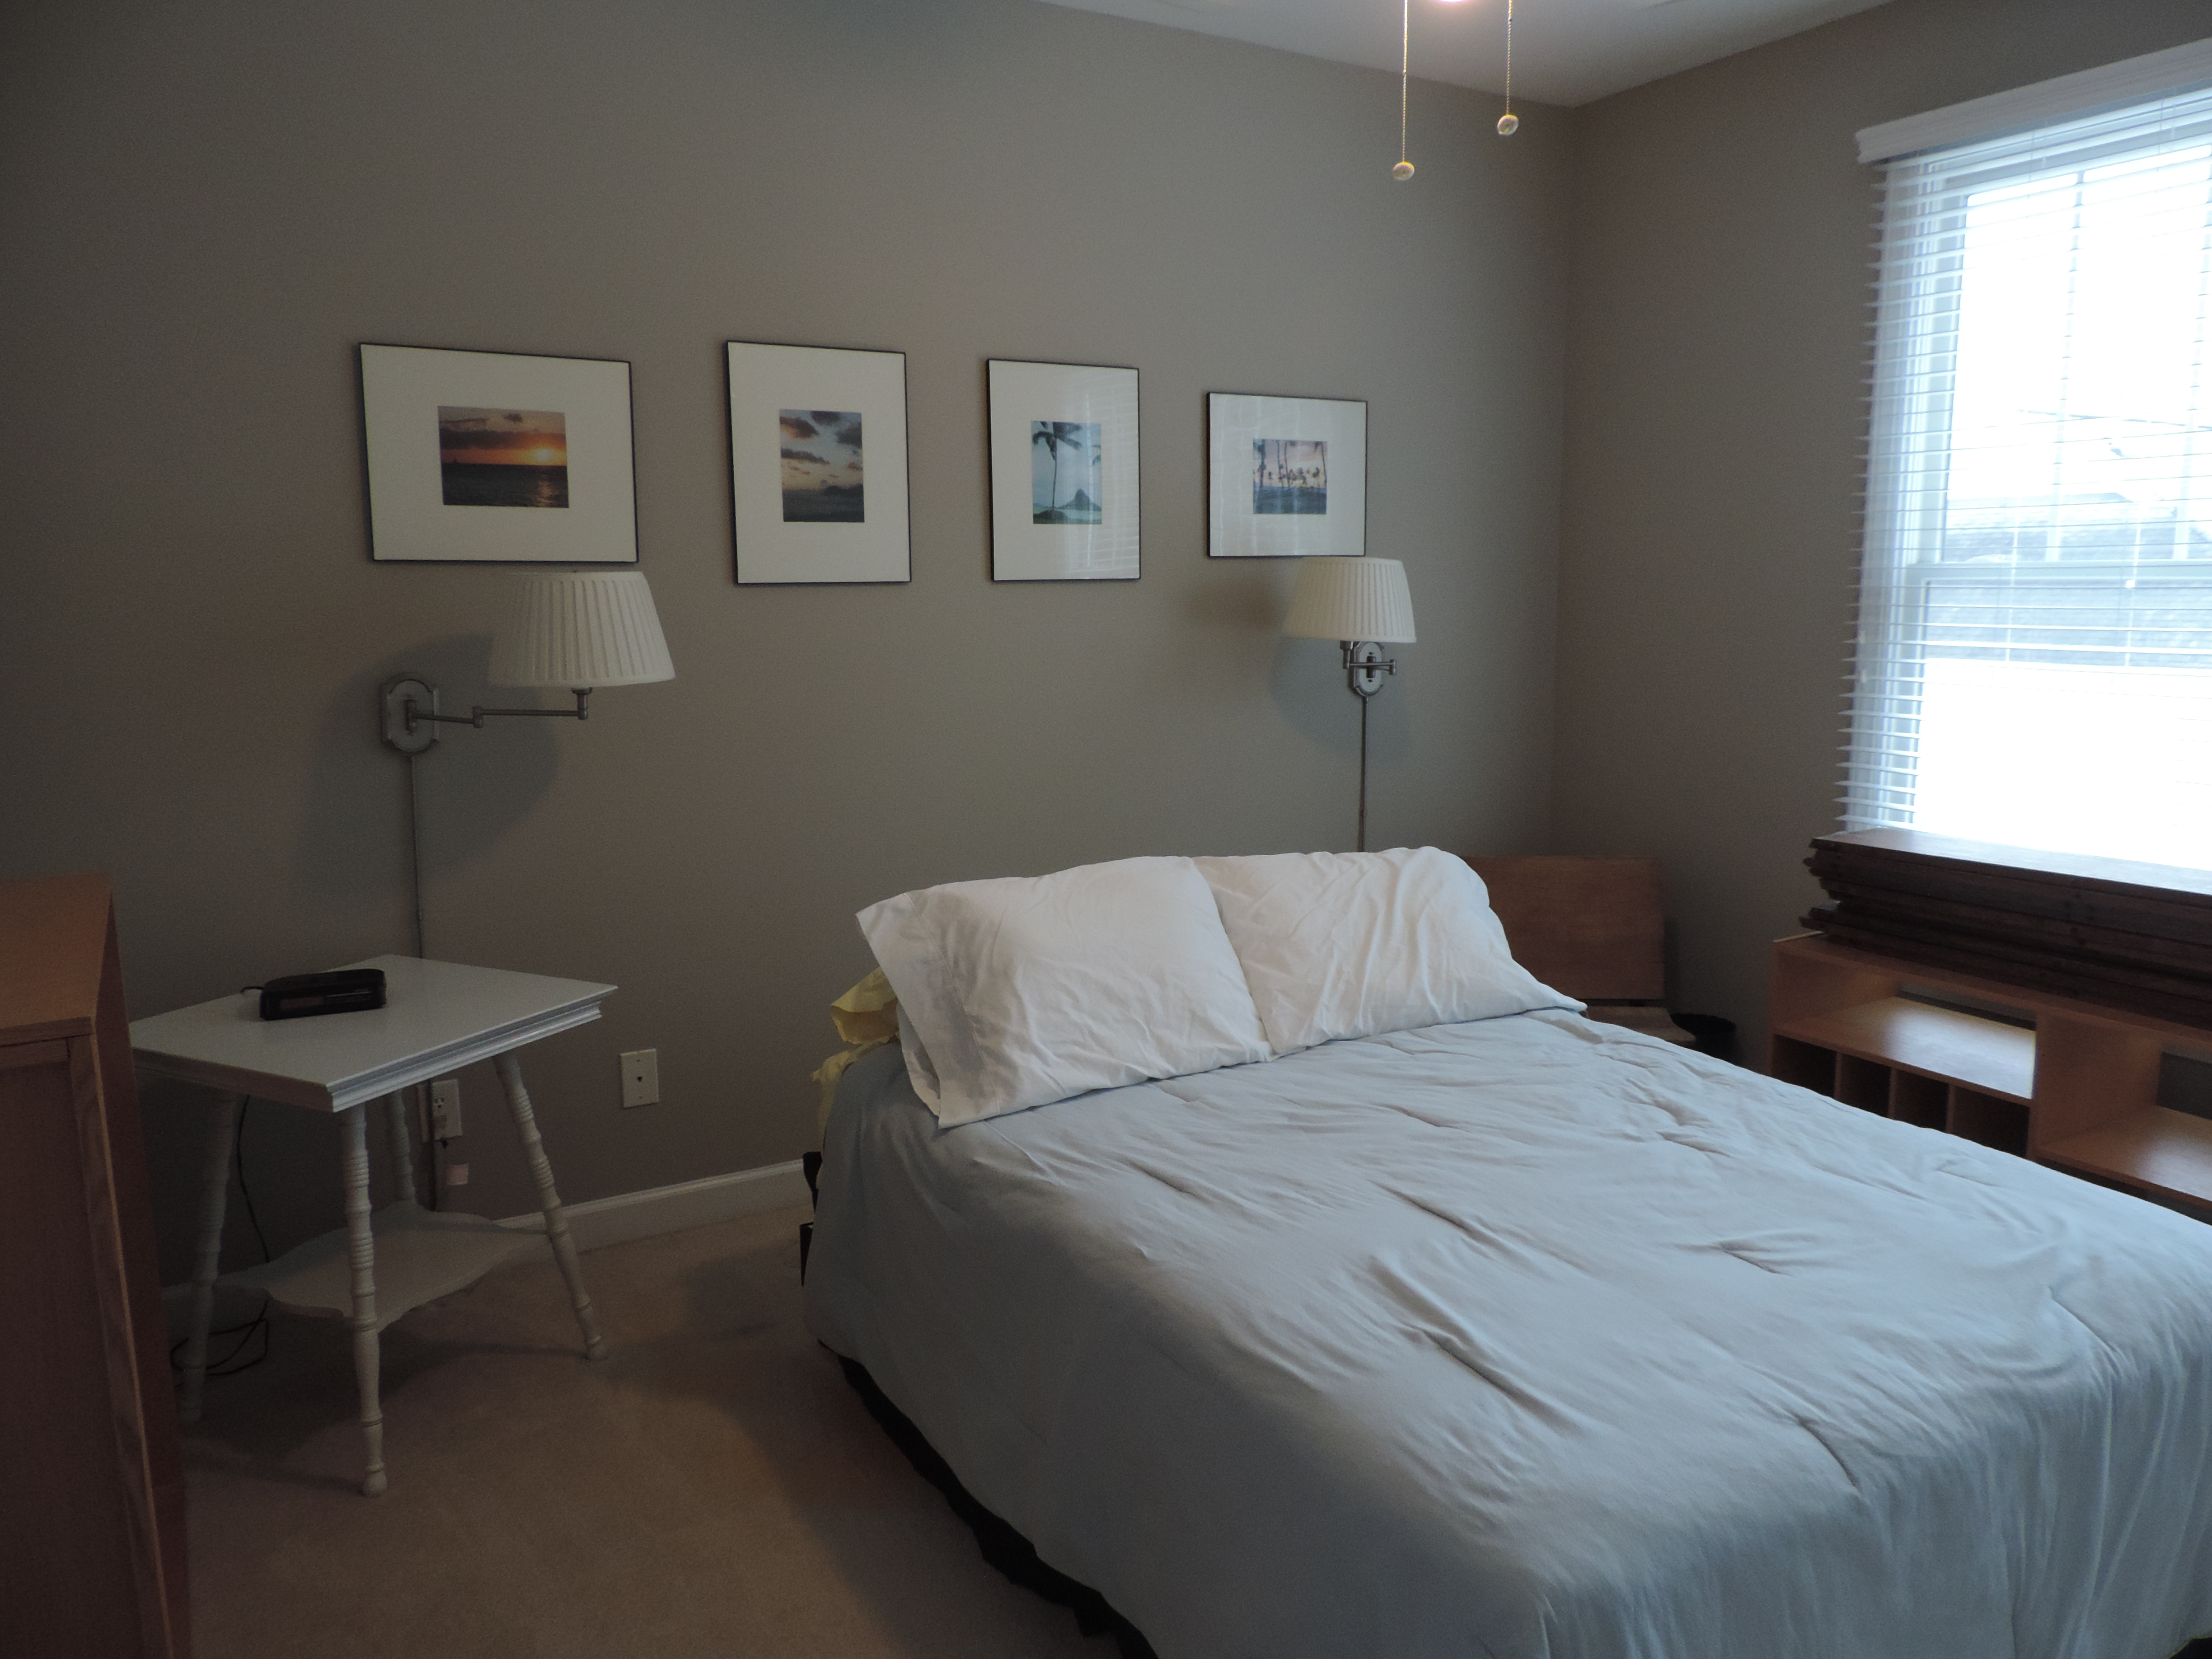 Townhouse Interior Painting